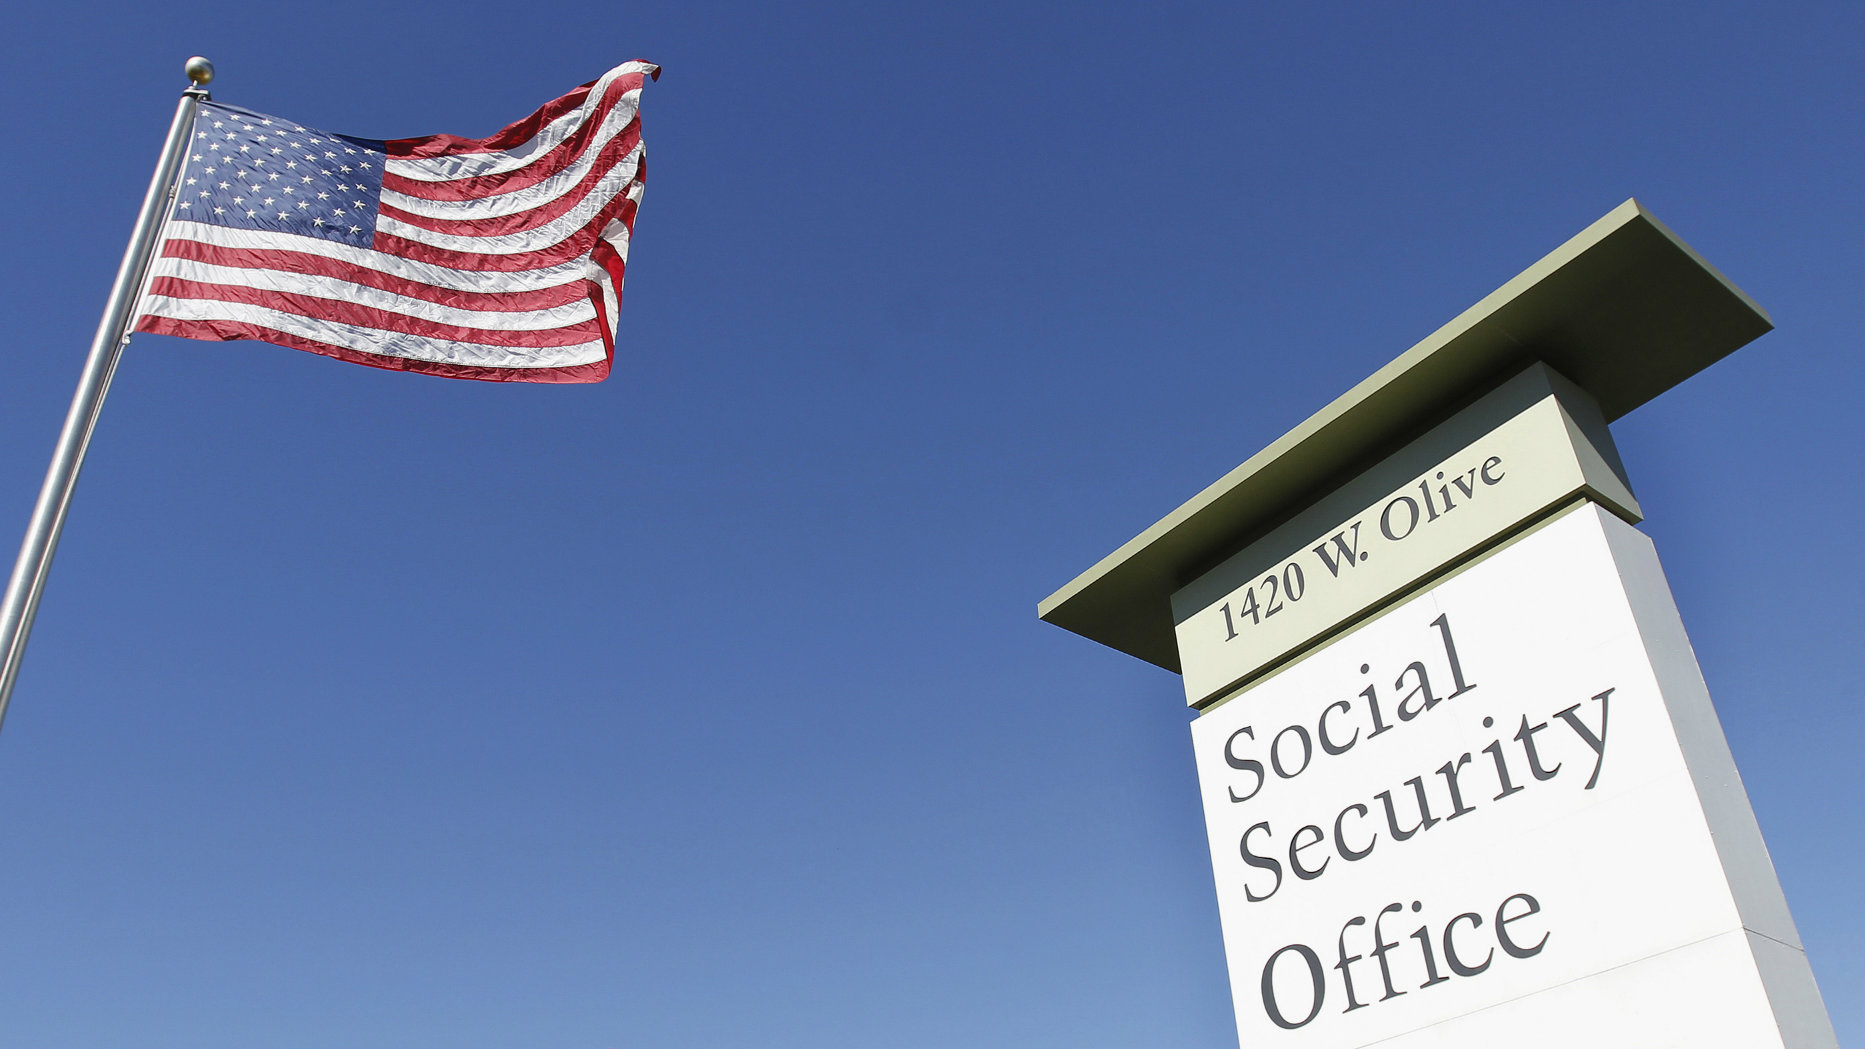 An American flag flutters in the wind next to signage for a United States Social Security Administration in California